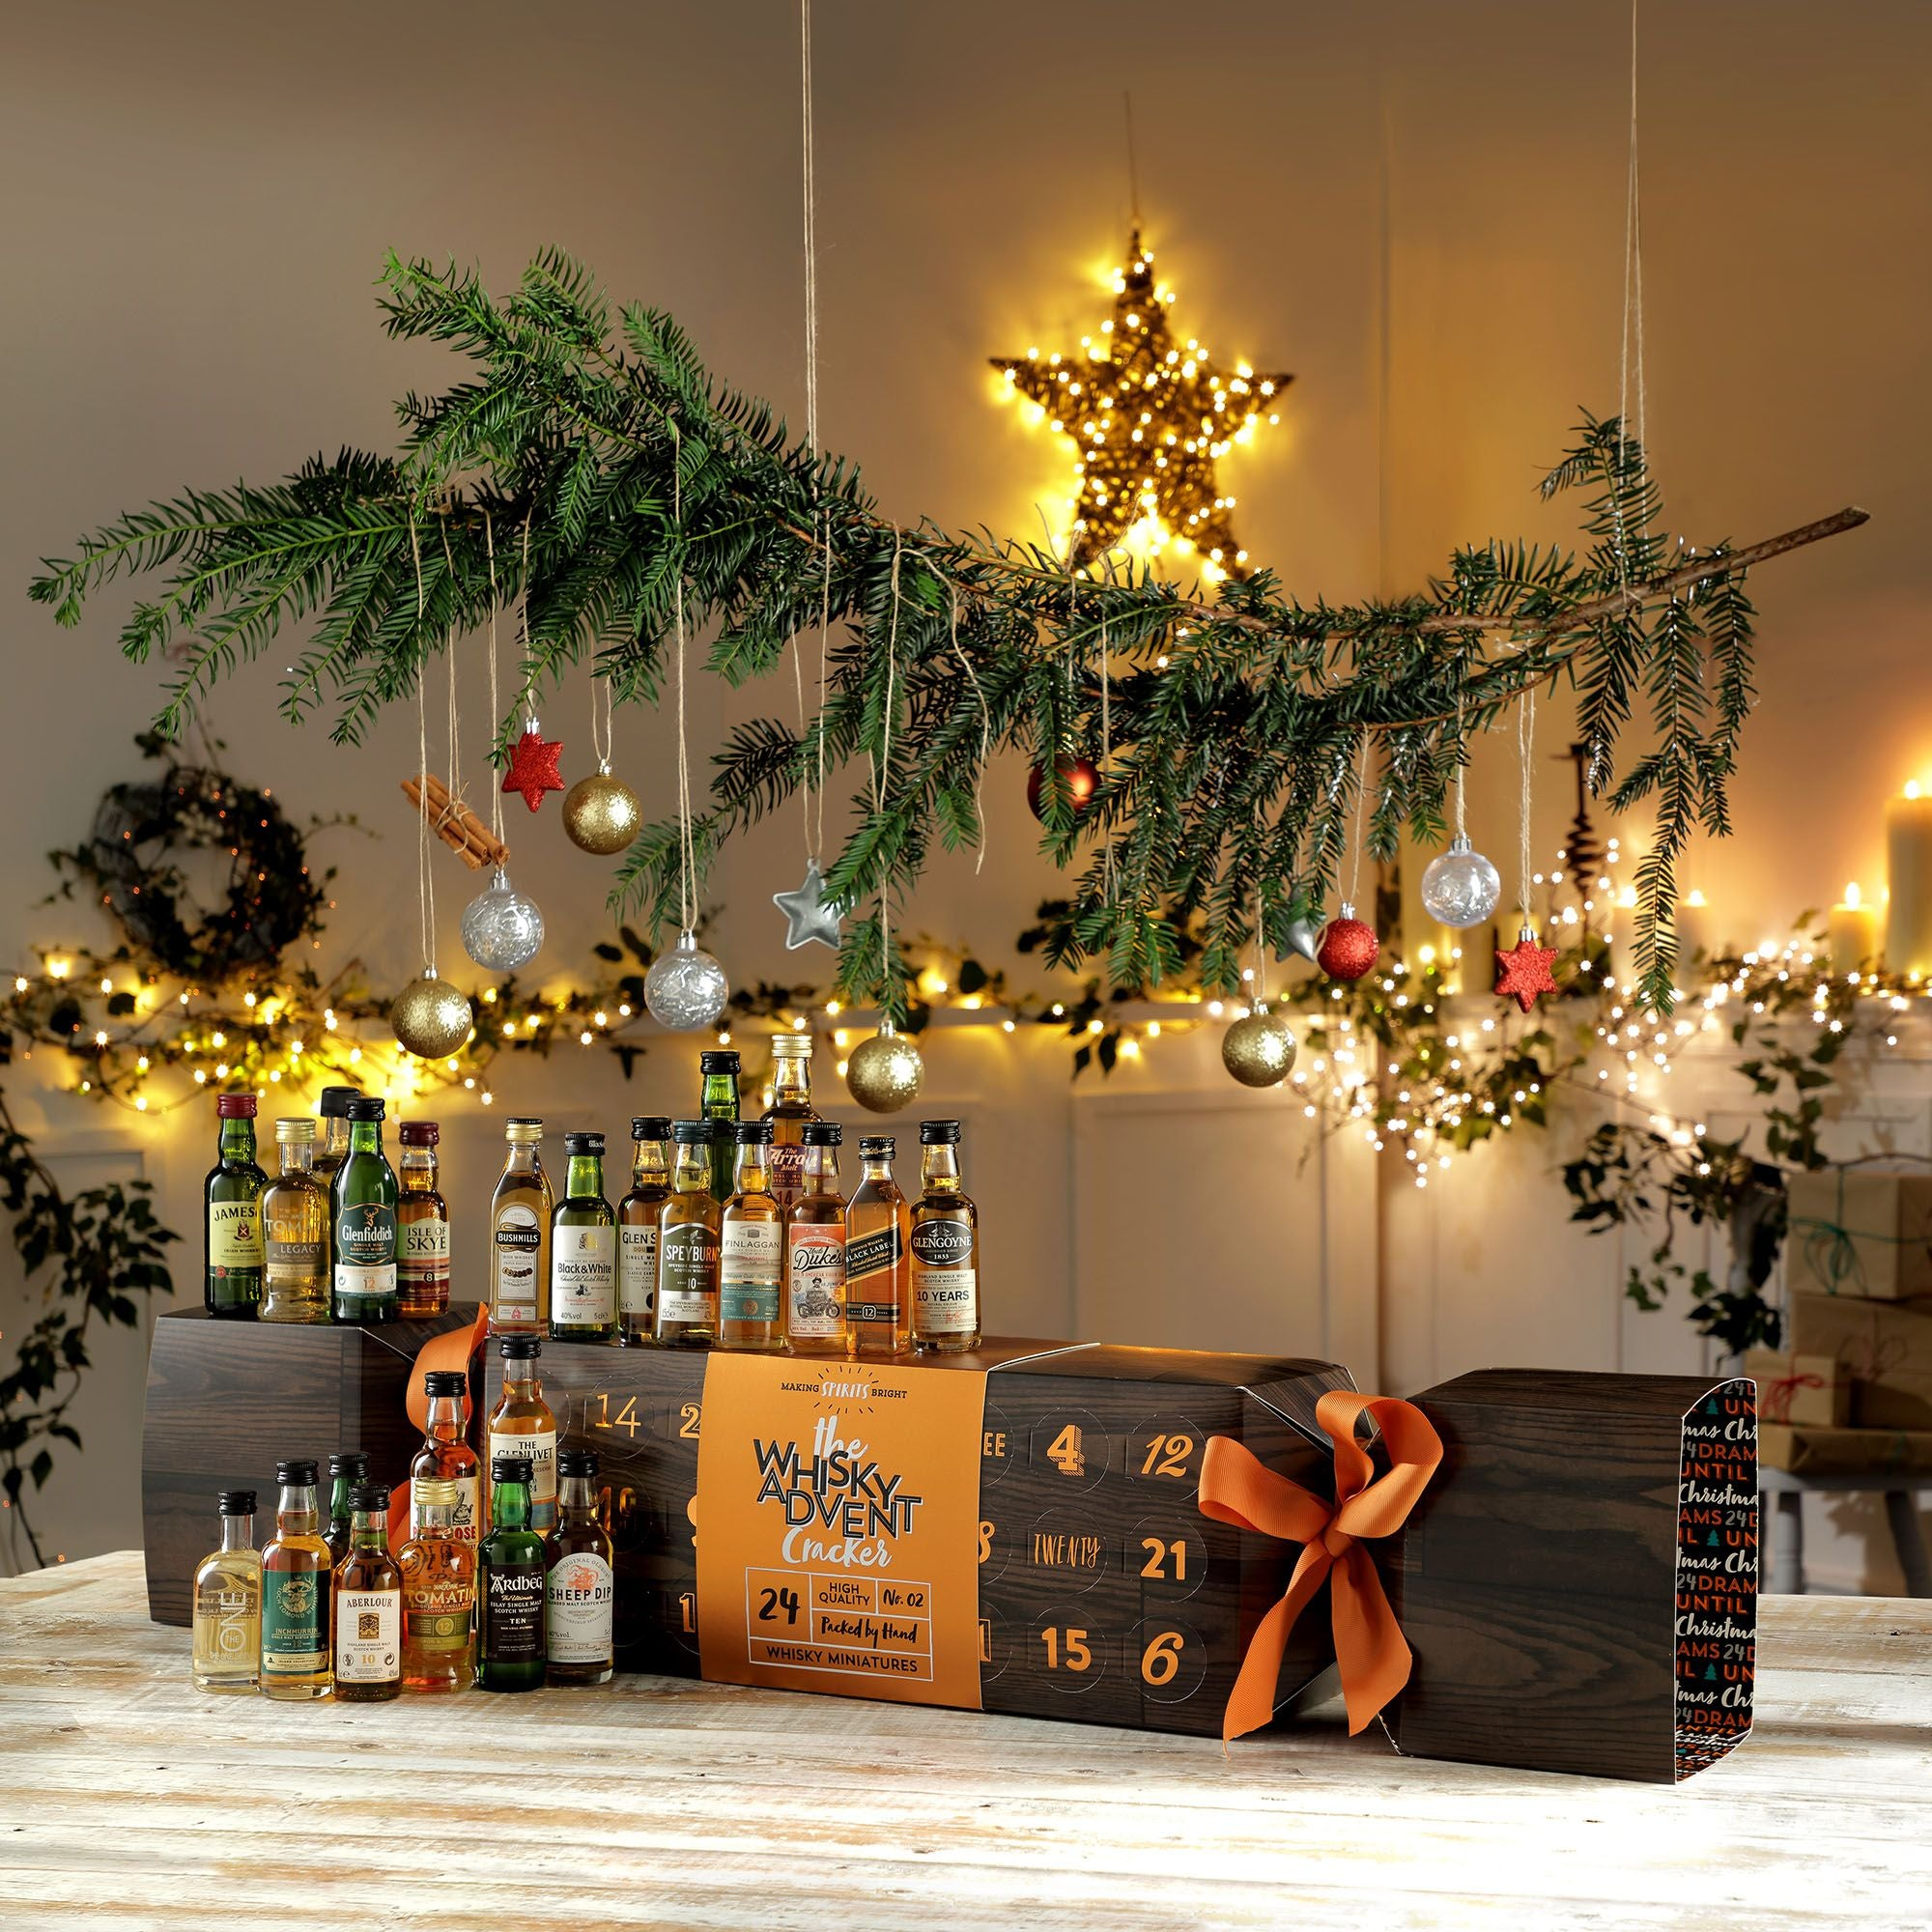 Whisky Advent Cracker by GDS - The Pop Up Deli